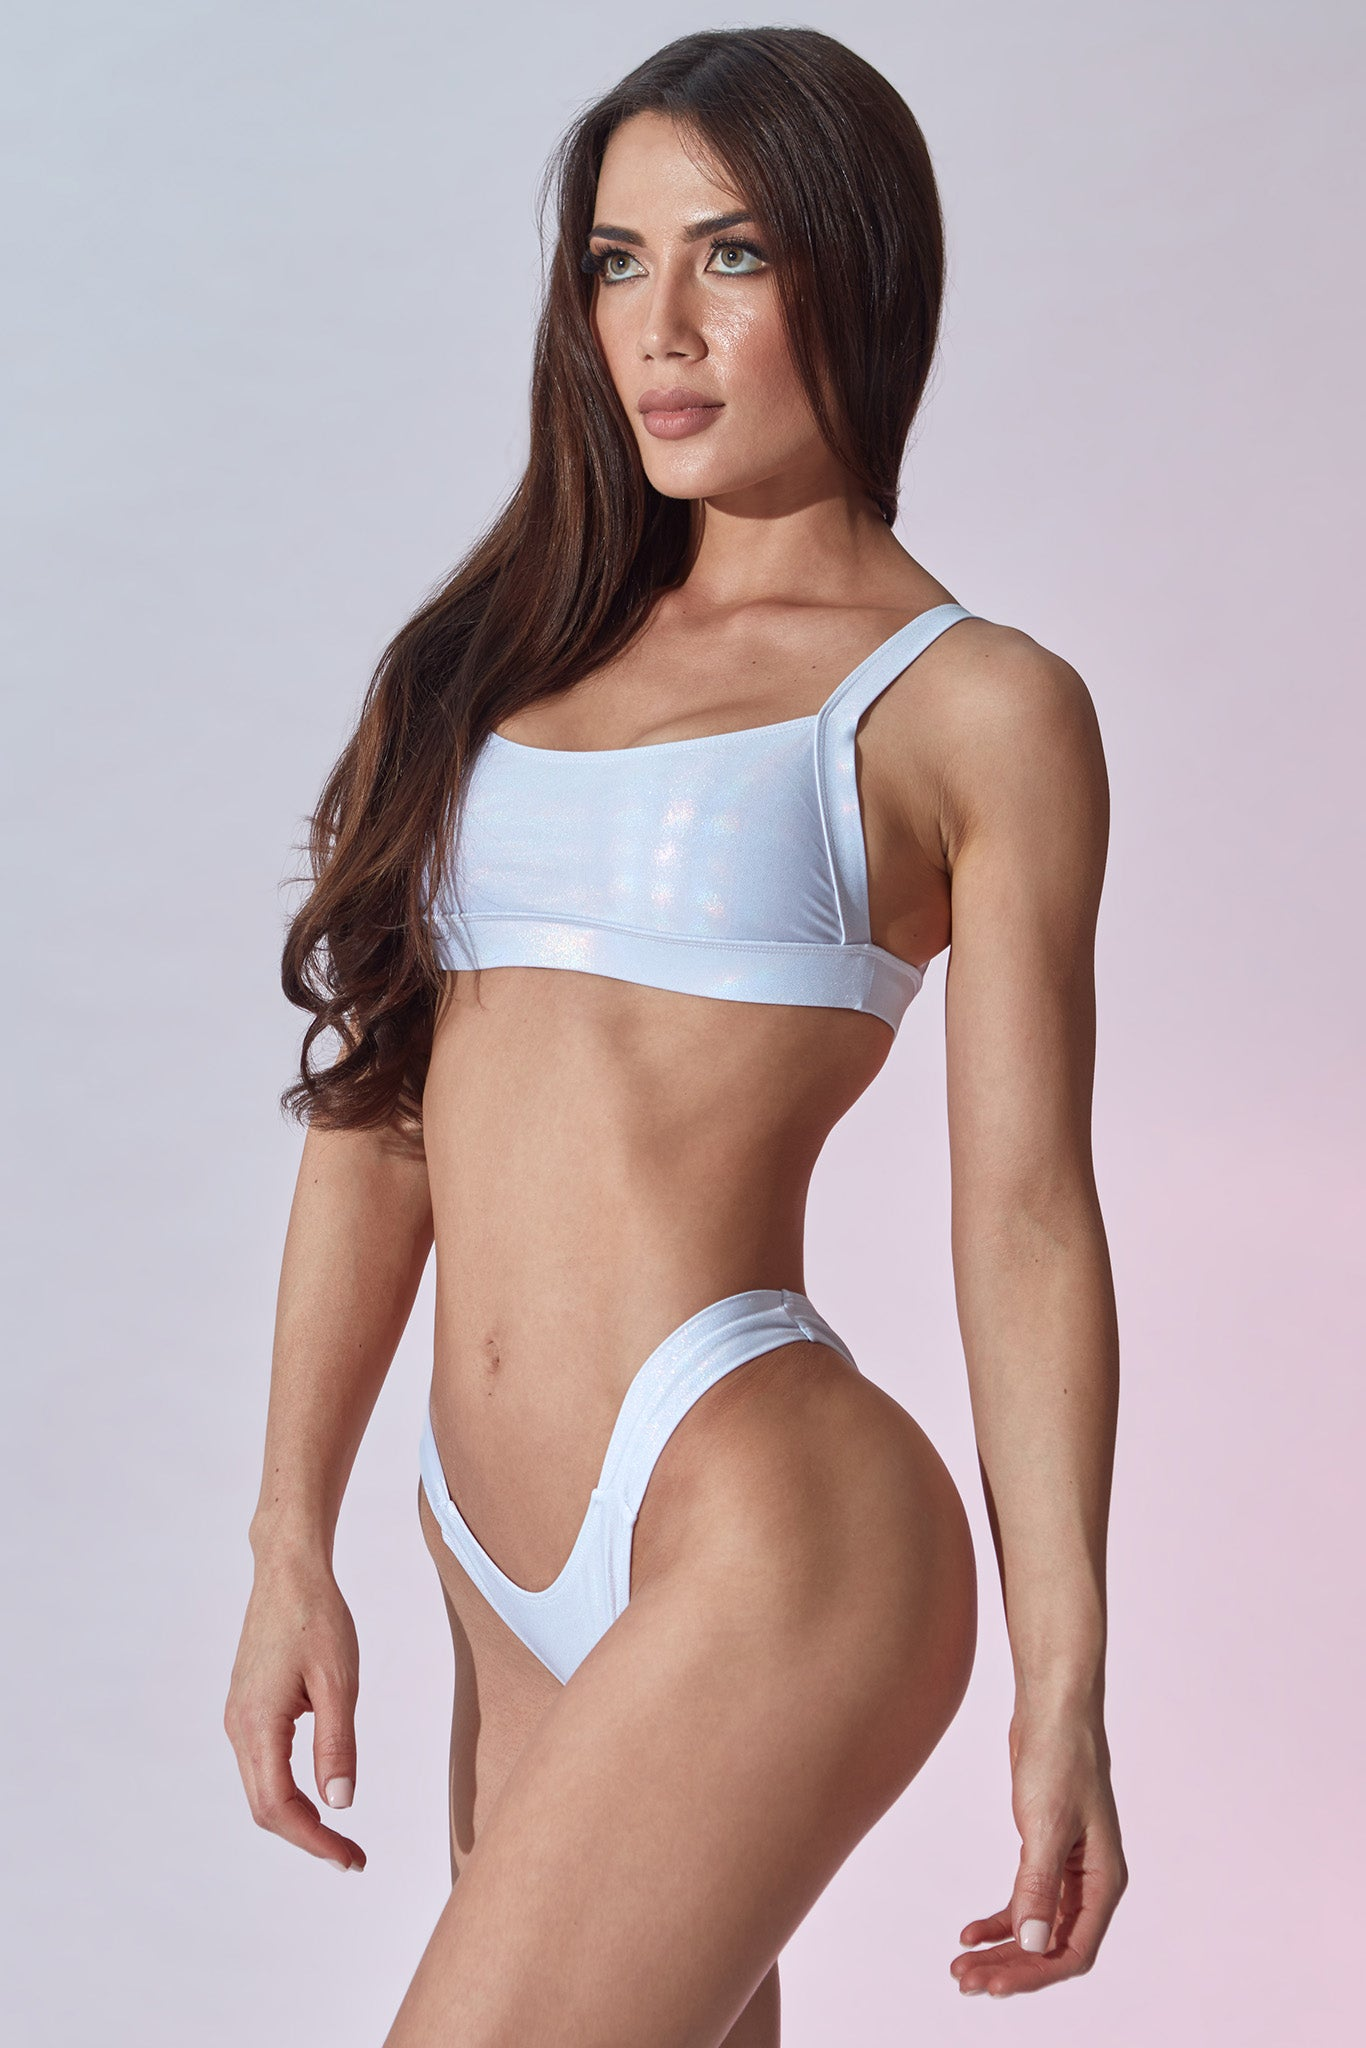 Du Cap Bikini - Iridescent - Side